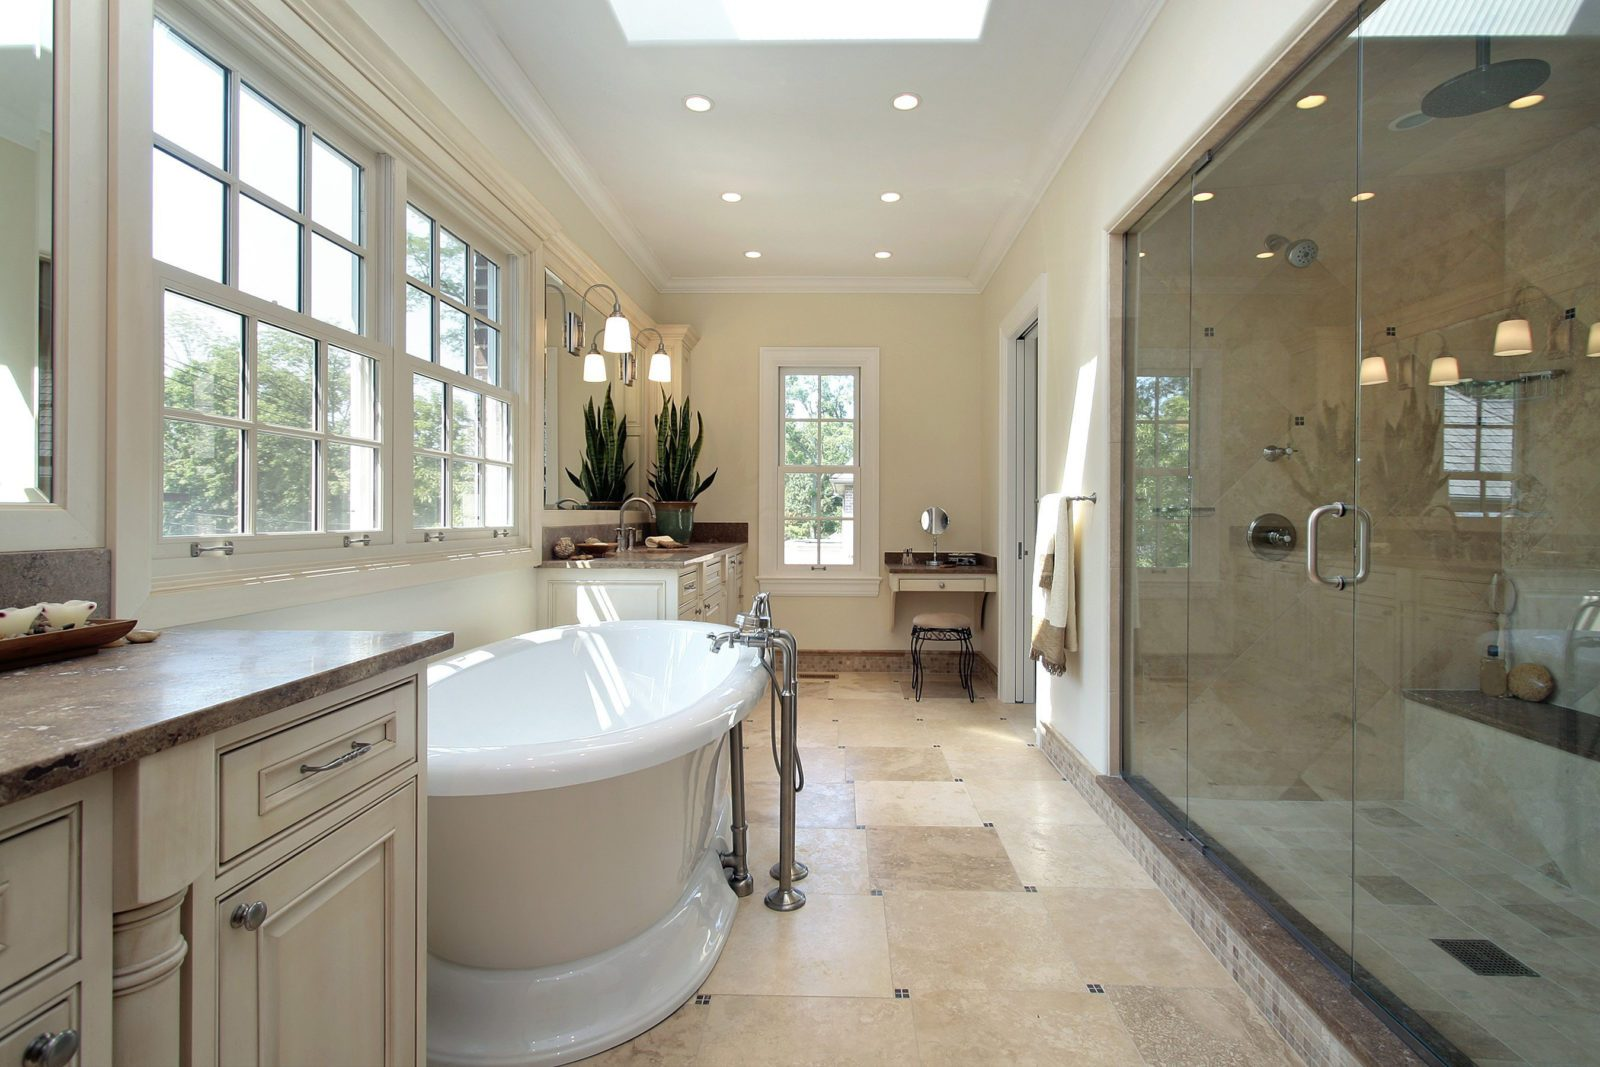 Bathroom remodel bay easy construction for Bathroom remodel ideas